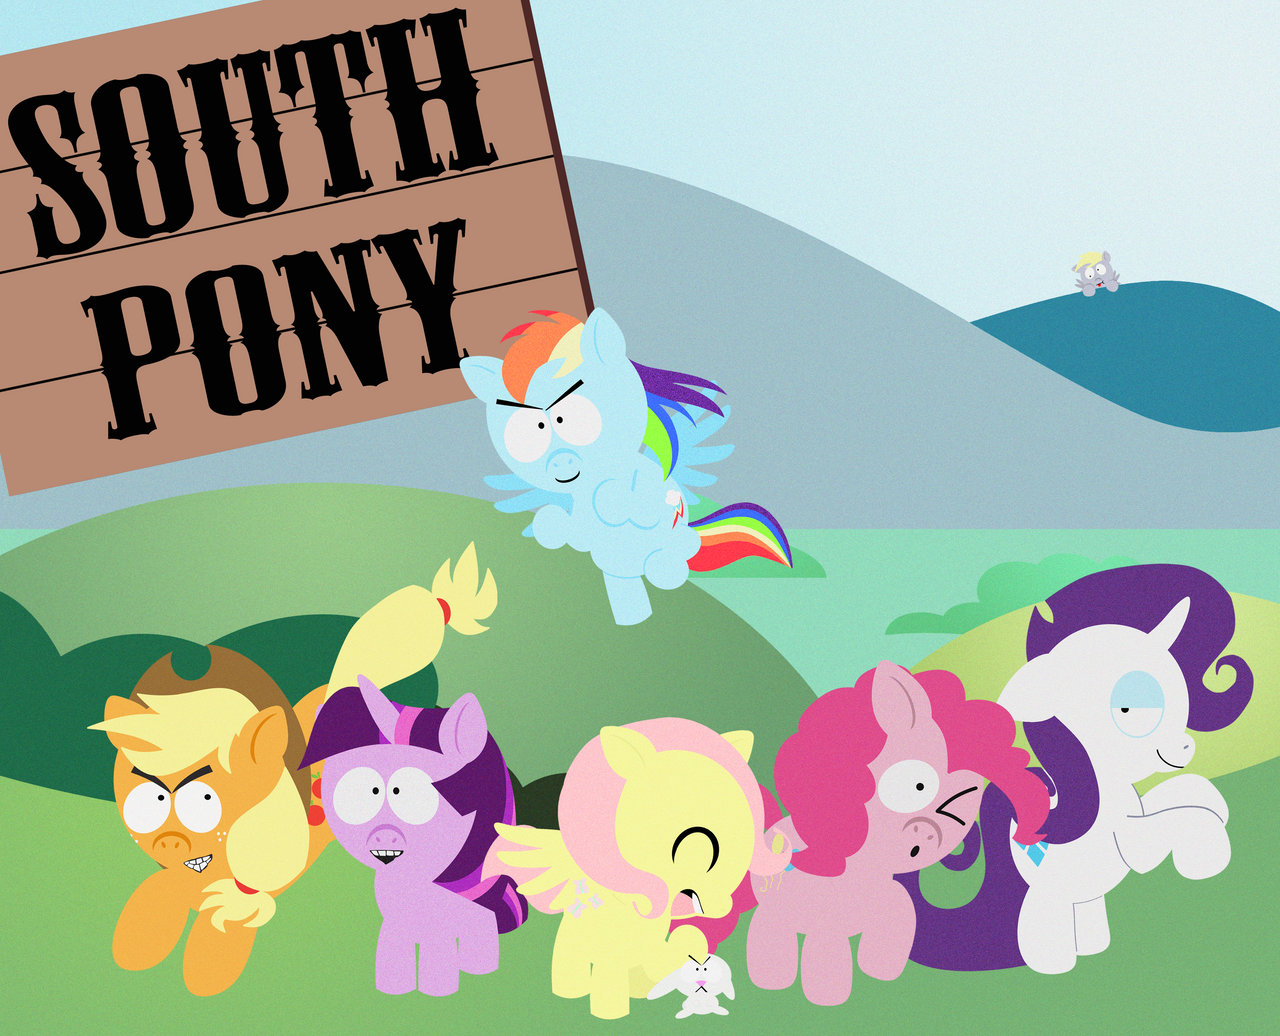 South Pony by Toonfreak